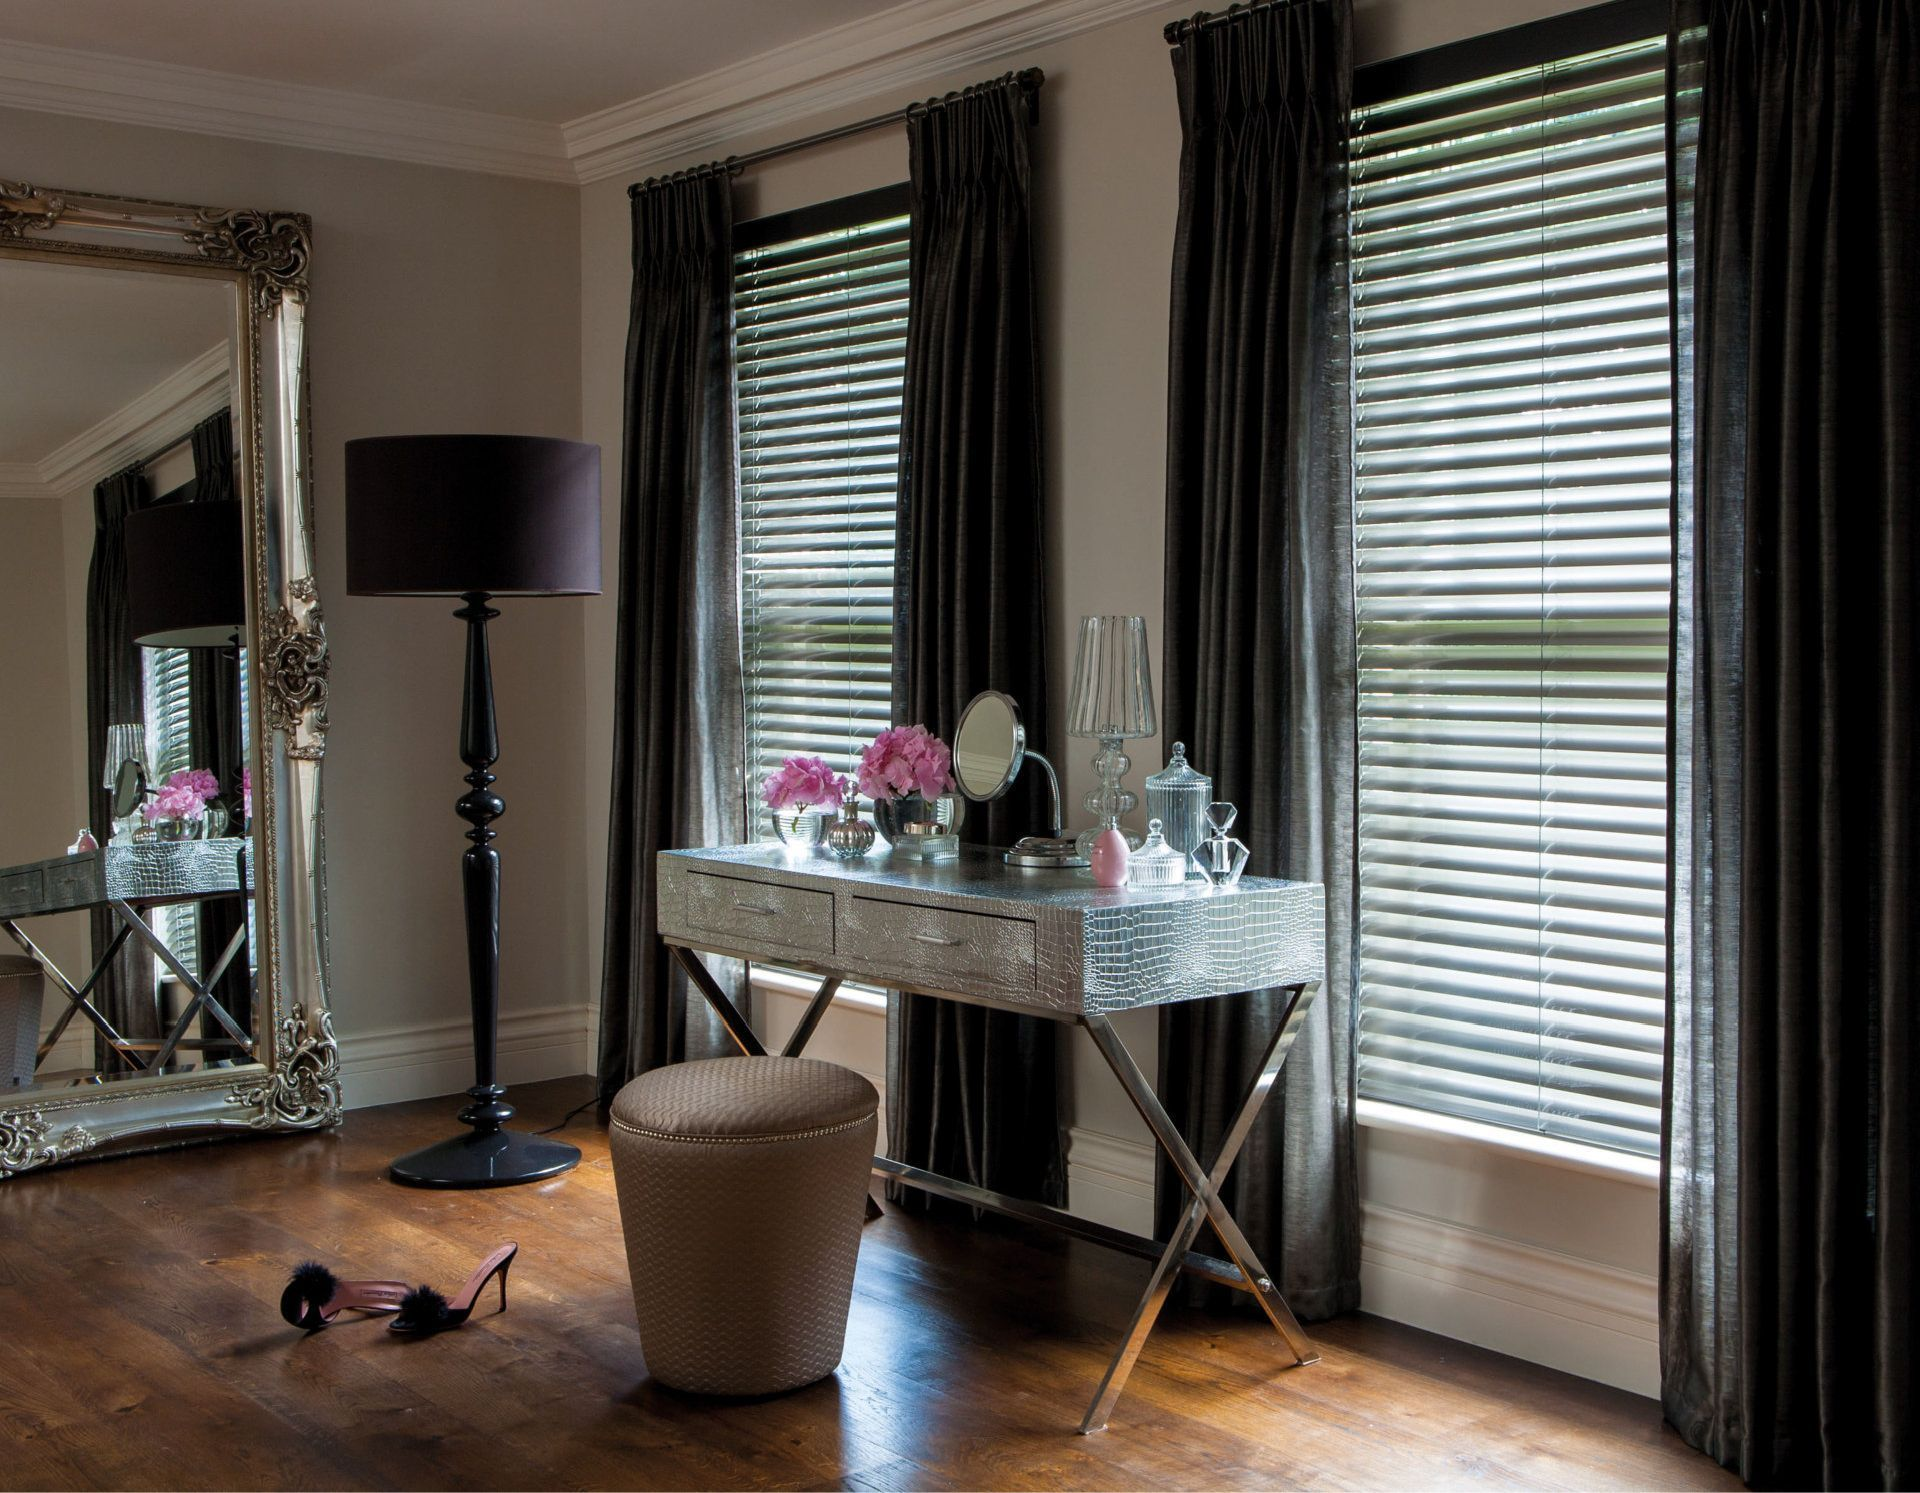 4 Lucky Ideas Bamboo Blinds And Curtains Window Roller Blinds Bamboo Blinds Basement Blinds Ideas Wa Wooden Blinds Curtains With Blinds Vertical Window Blinds